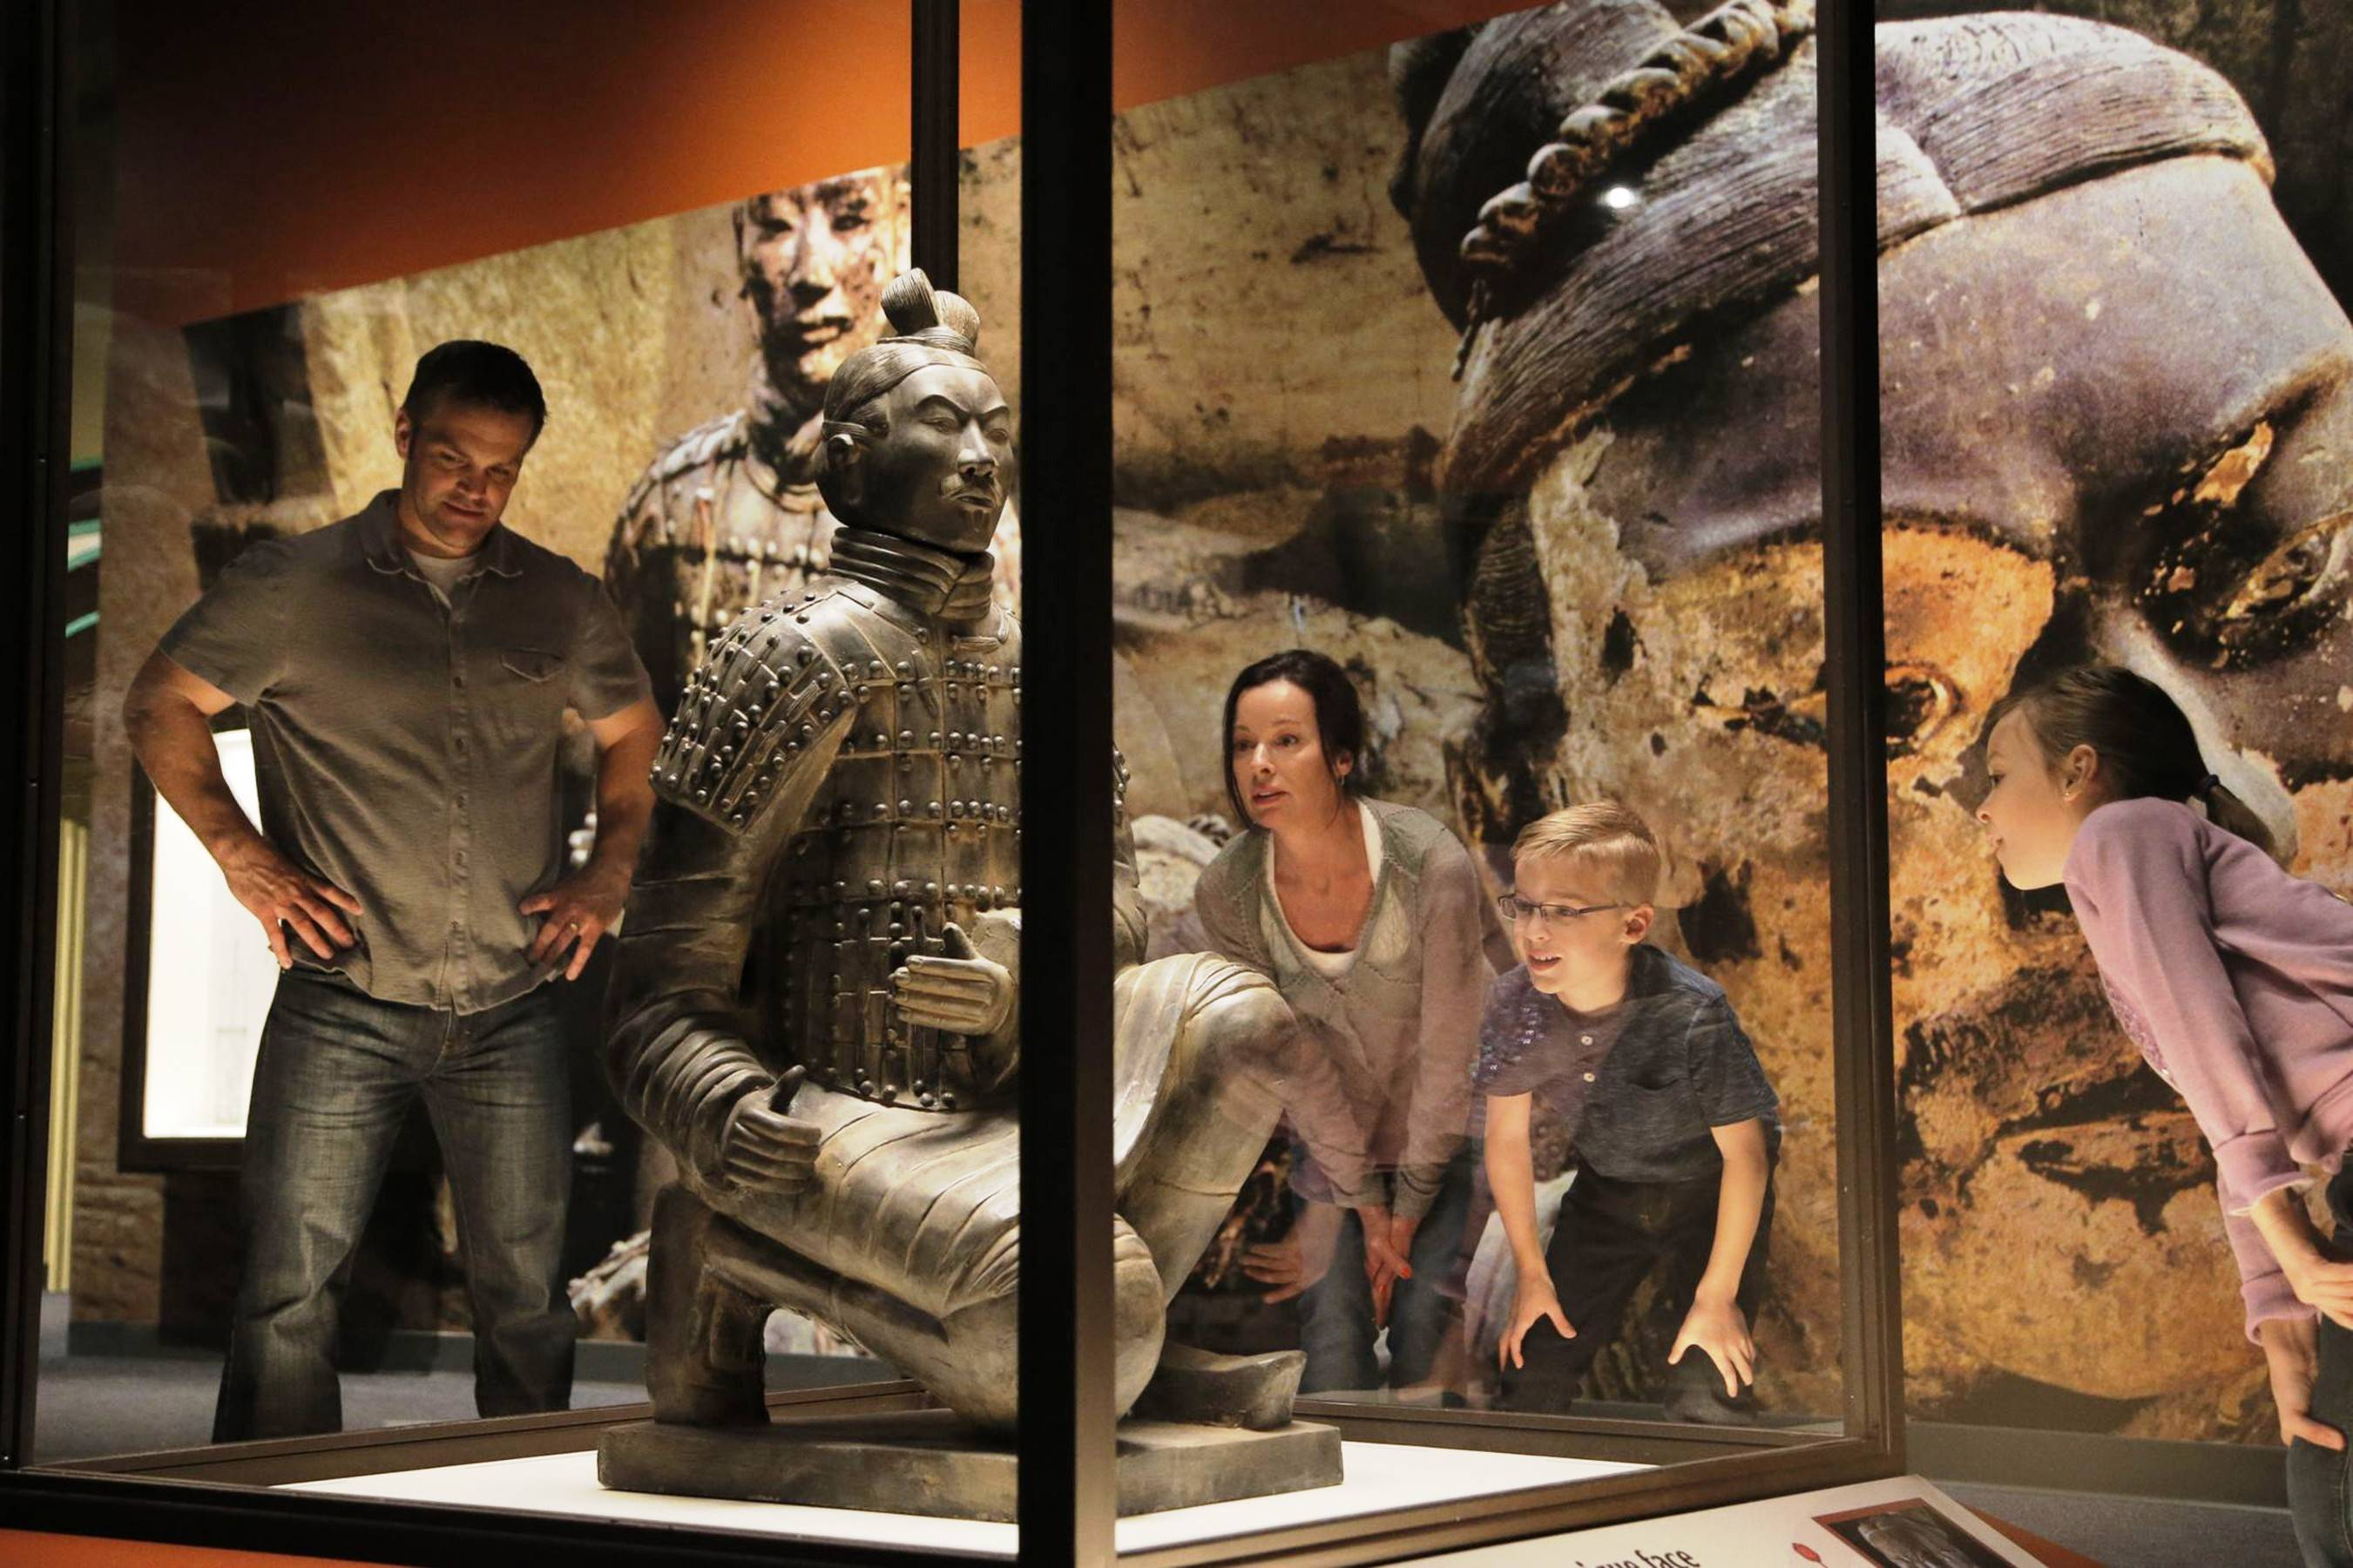 Eight of several thousand unearthed Terra Cotta Warrior statues, created to guard the tomb of China's first emperor, are on display through November at the Children's Museum of Indianapolis.